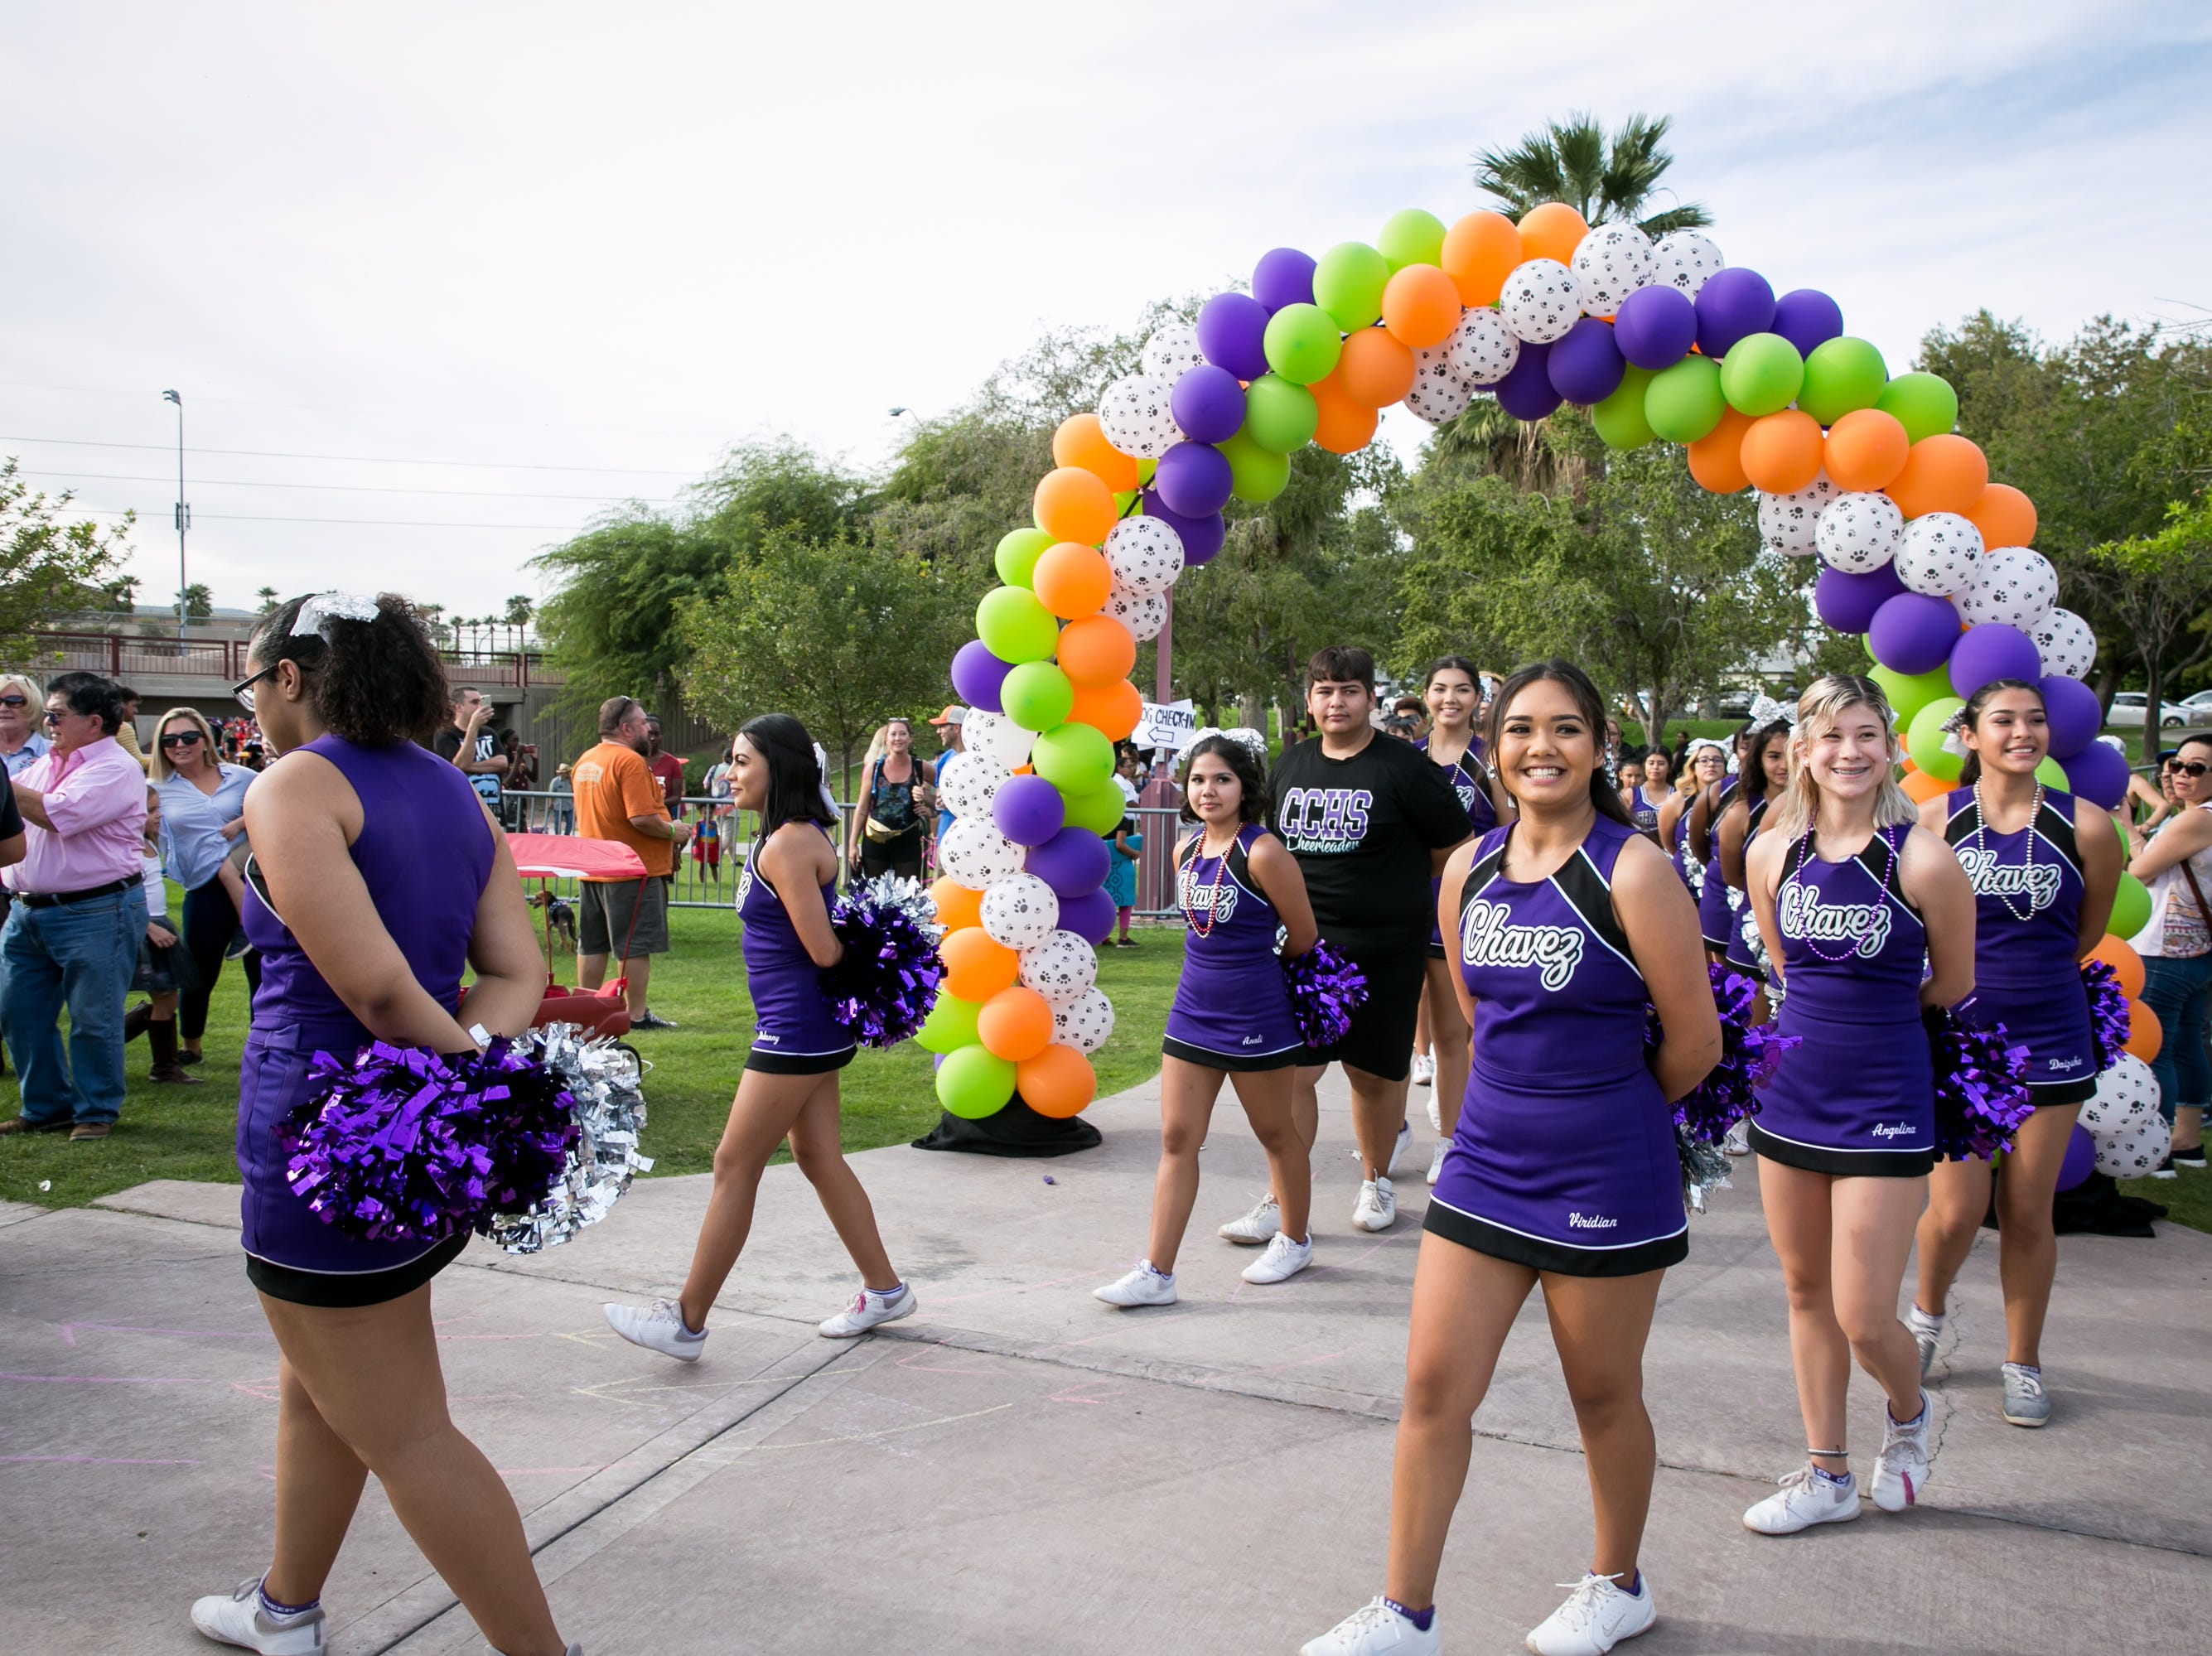 The Cesar Chavez cheer squad performed with percision during Howl-o-Ween at Hance Park on Sunday, October 28, 2018.